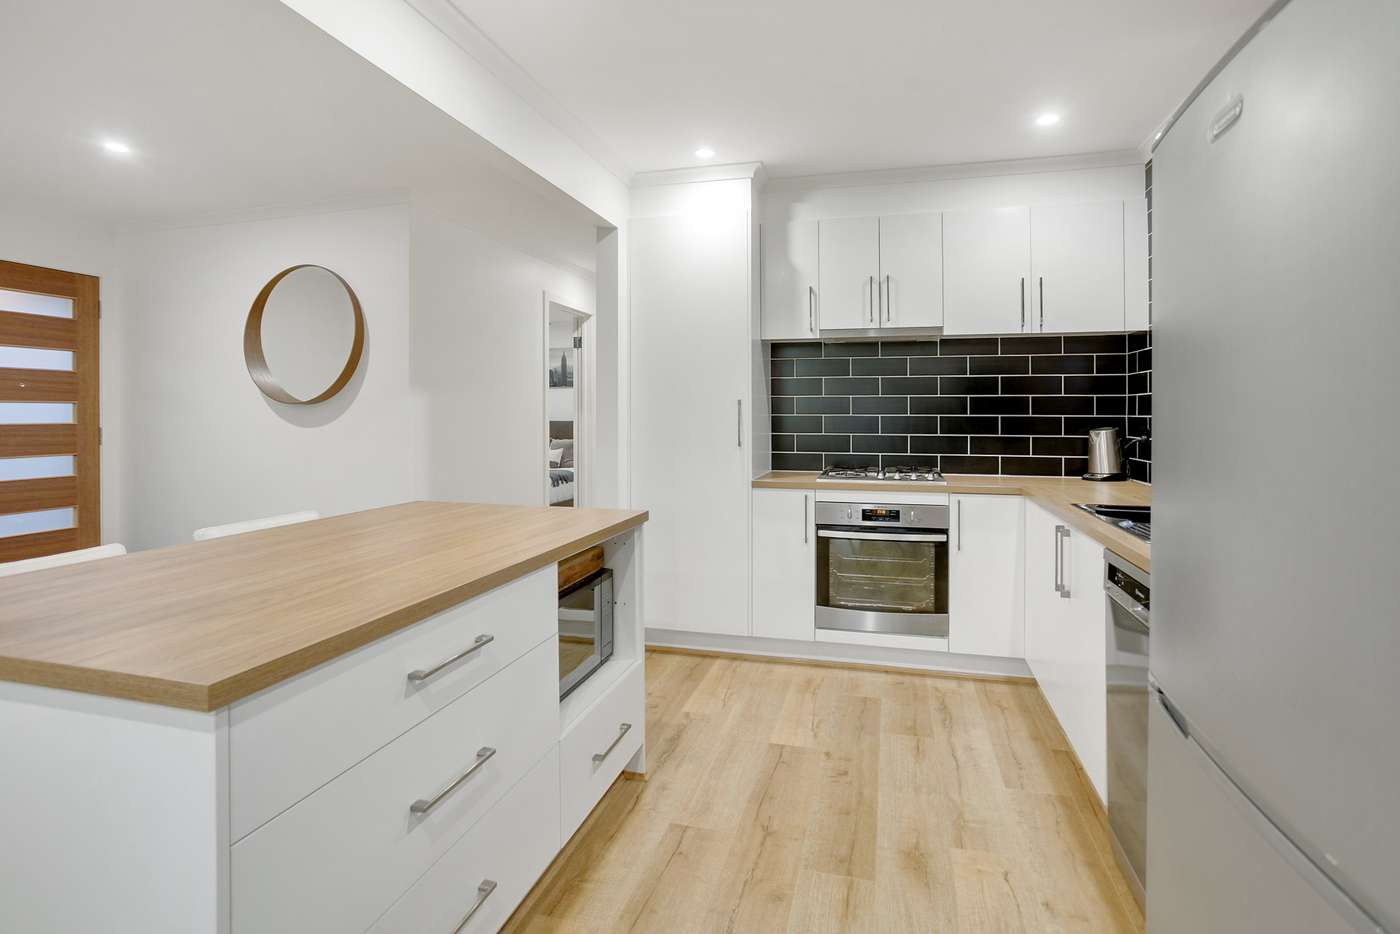 Sixth view of Homely house listing, 3 Pennington Court, Baxter VIC 3911